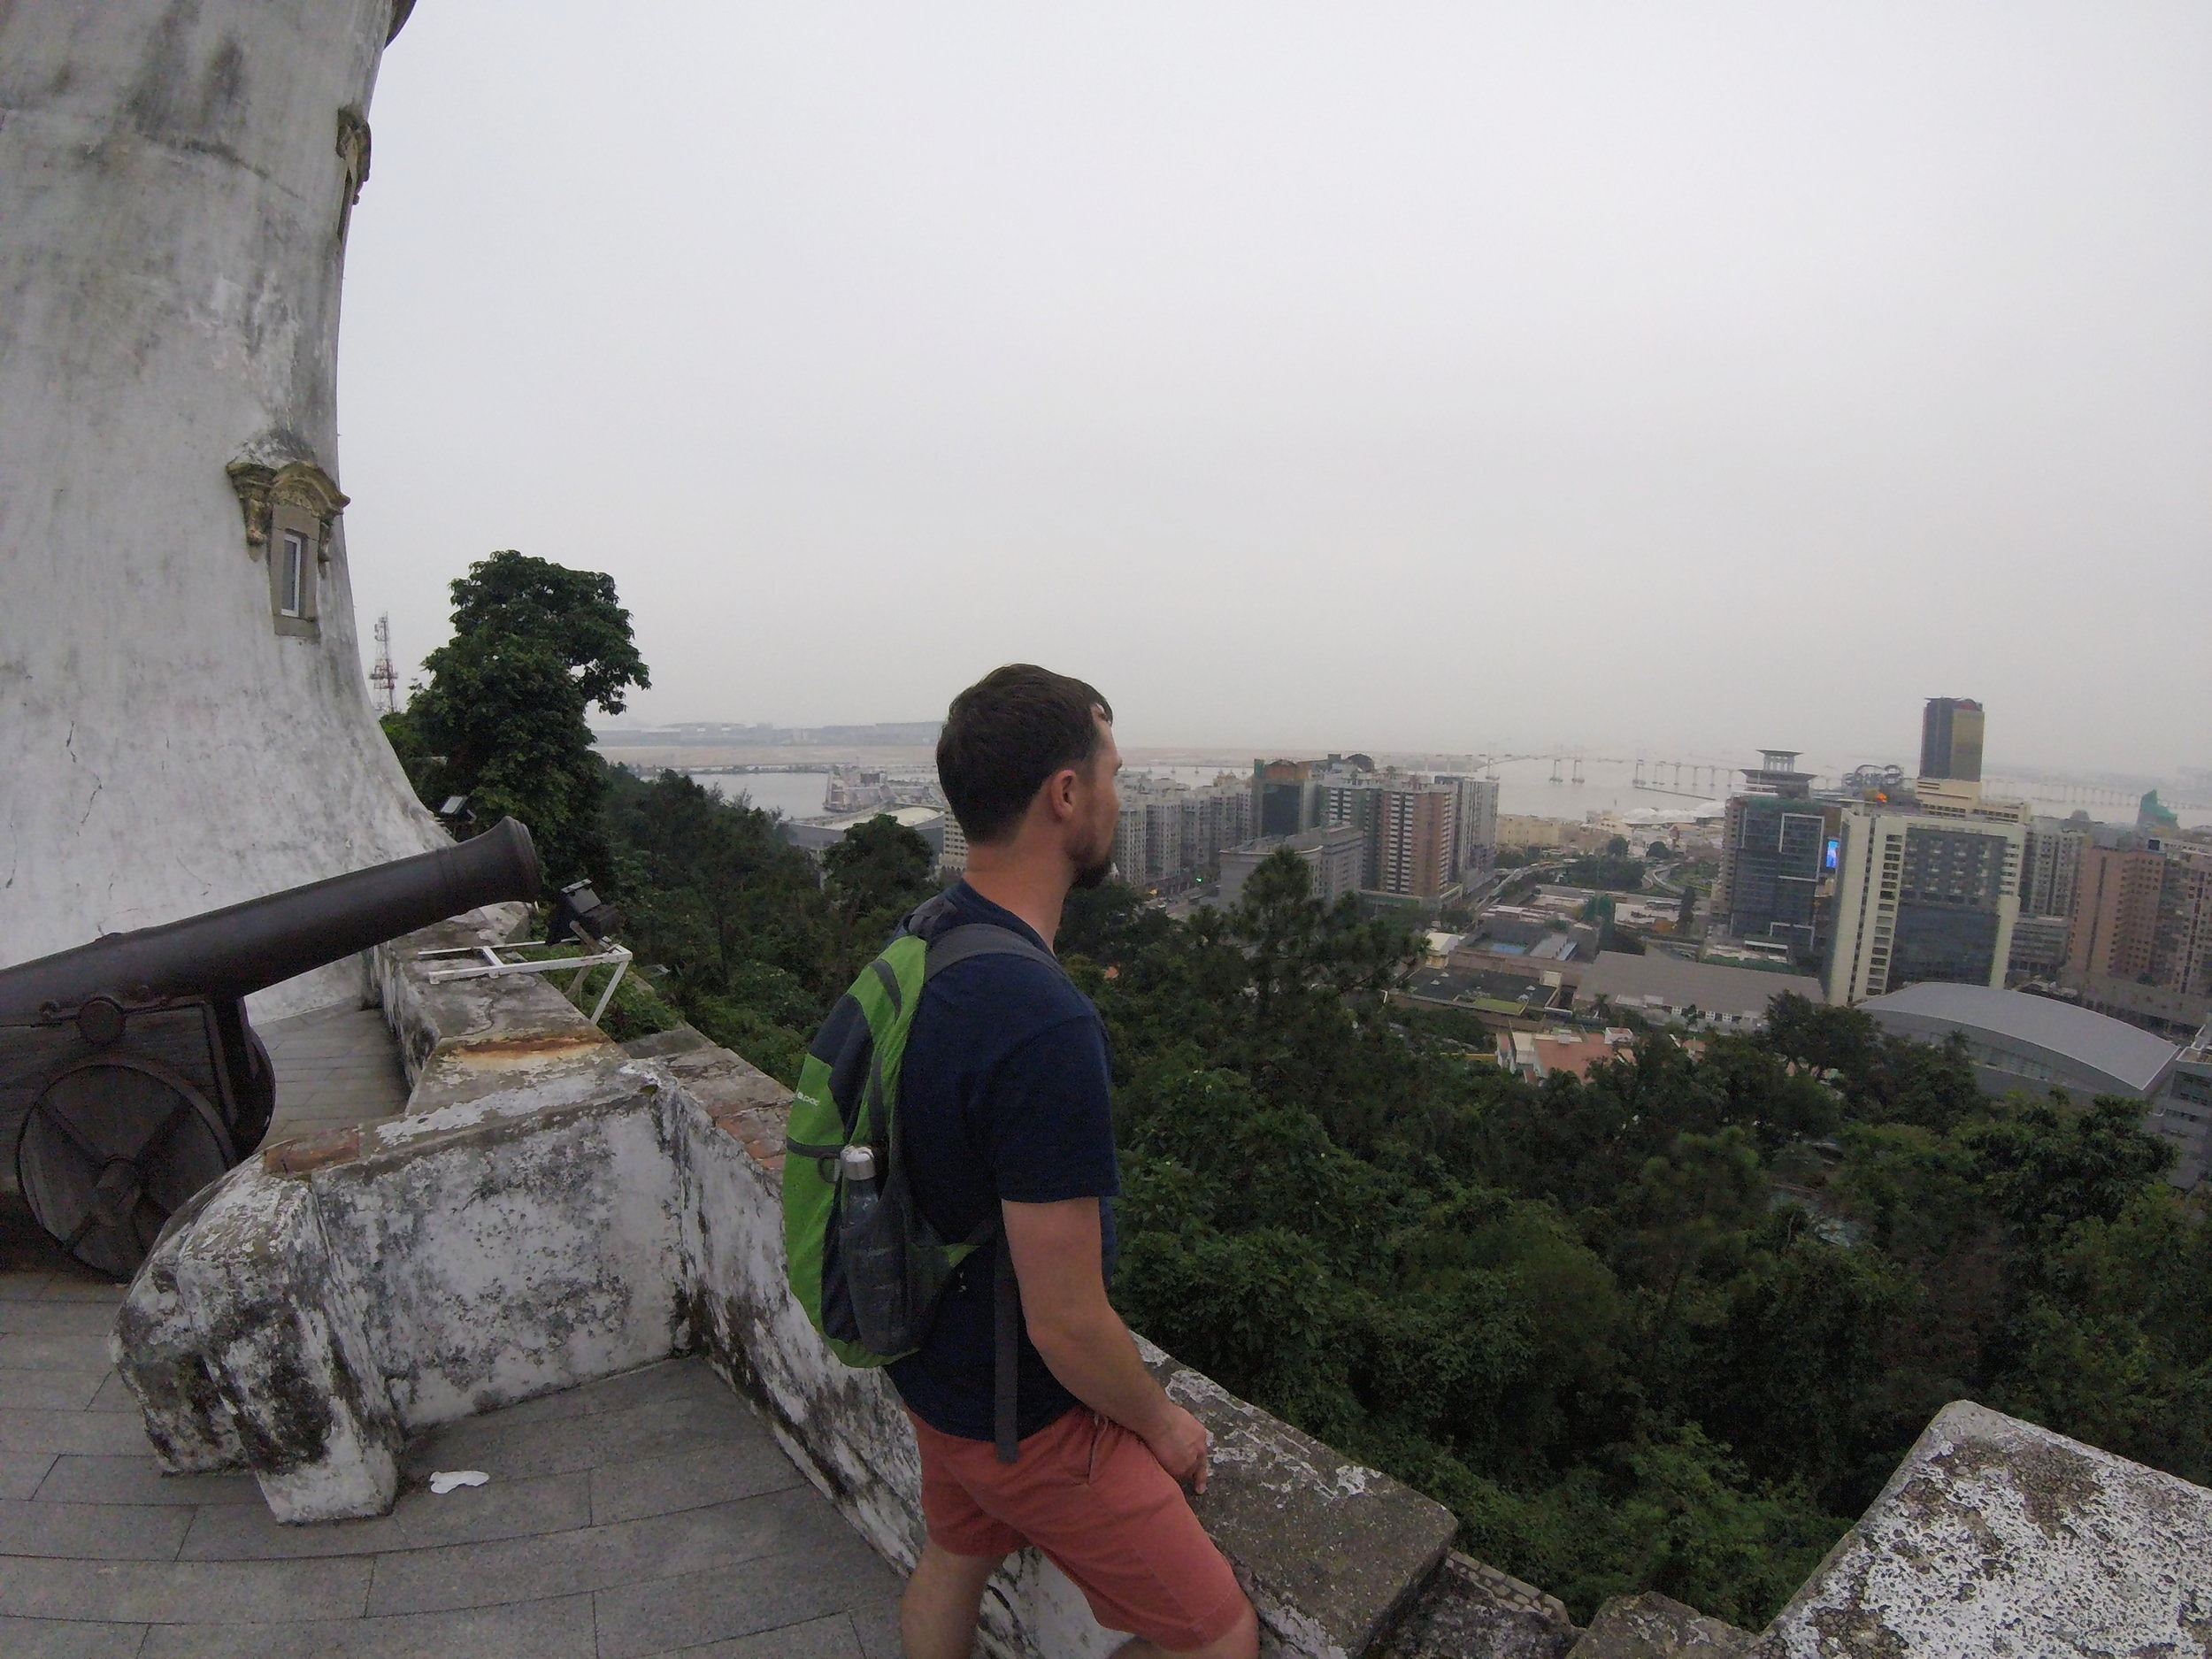 Guia Lighthouse provides sweeping view over Macau